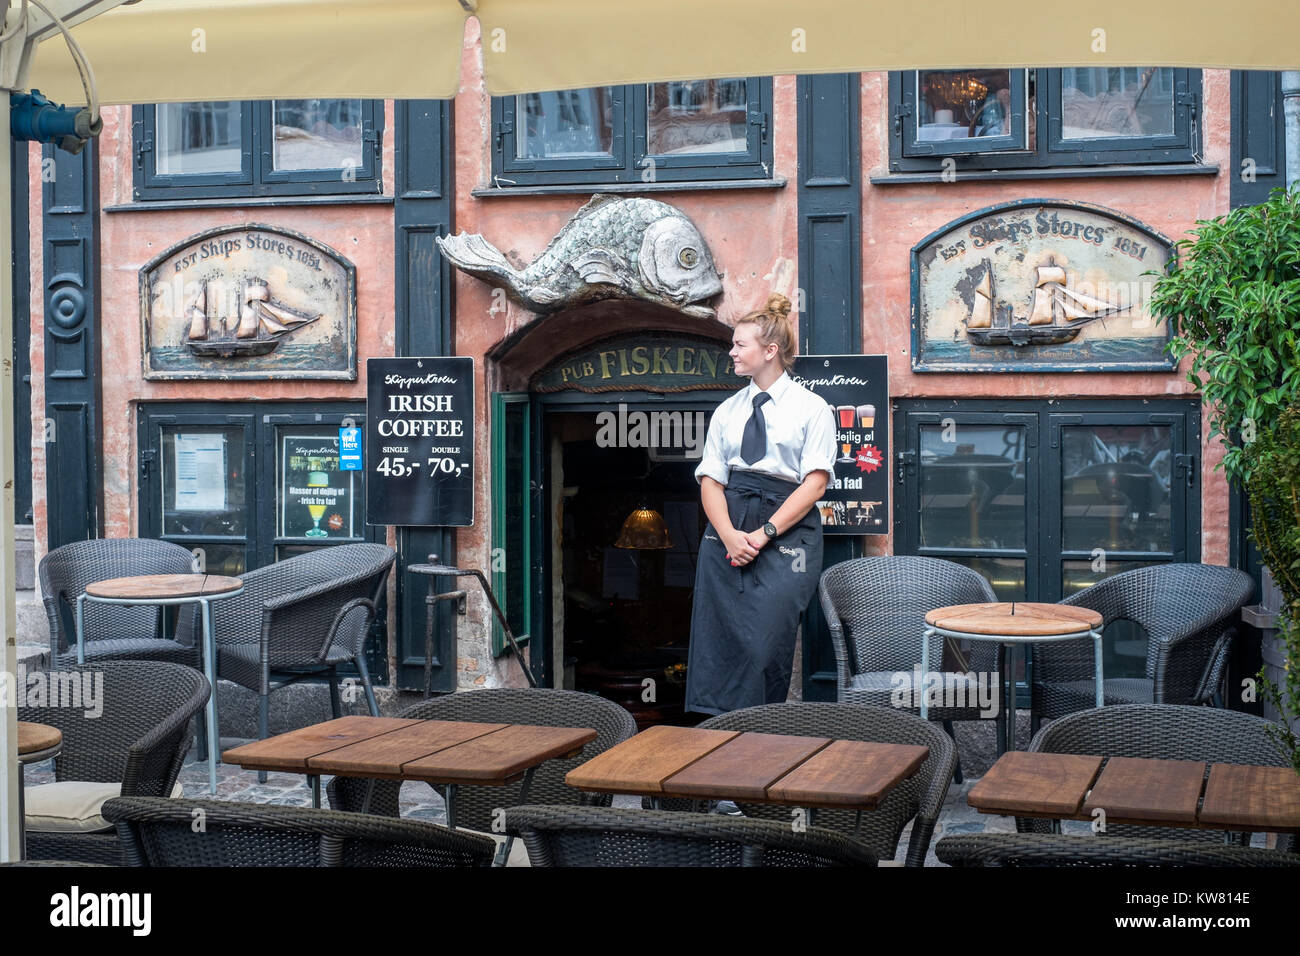 Waitress outside a waterfront restaurant at Nyhavn, a 17th century harbor district in the center of Copenhagen and - Stock Image